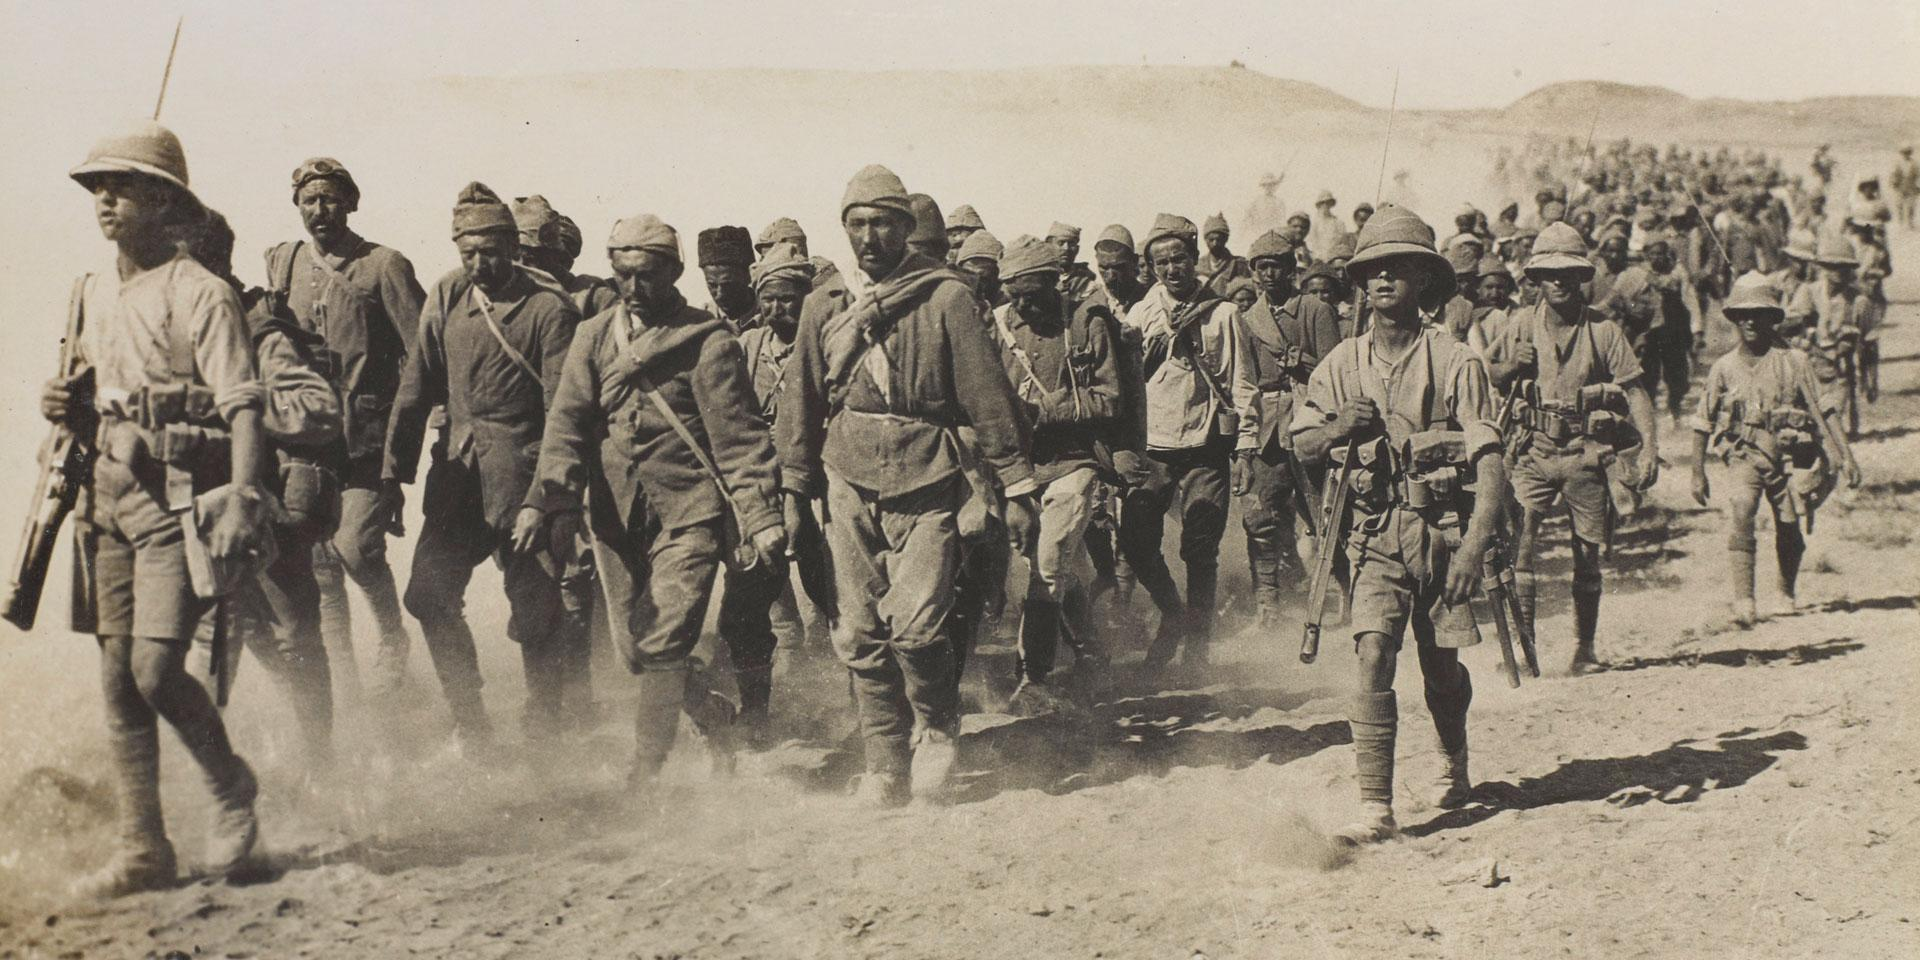 Turkish prisoners escorted by the 1/5th Queen's Own (Royal West Kent) Regiment, Mesopotamia, 1917